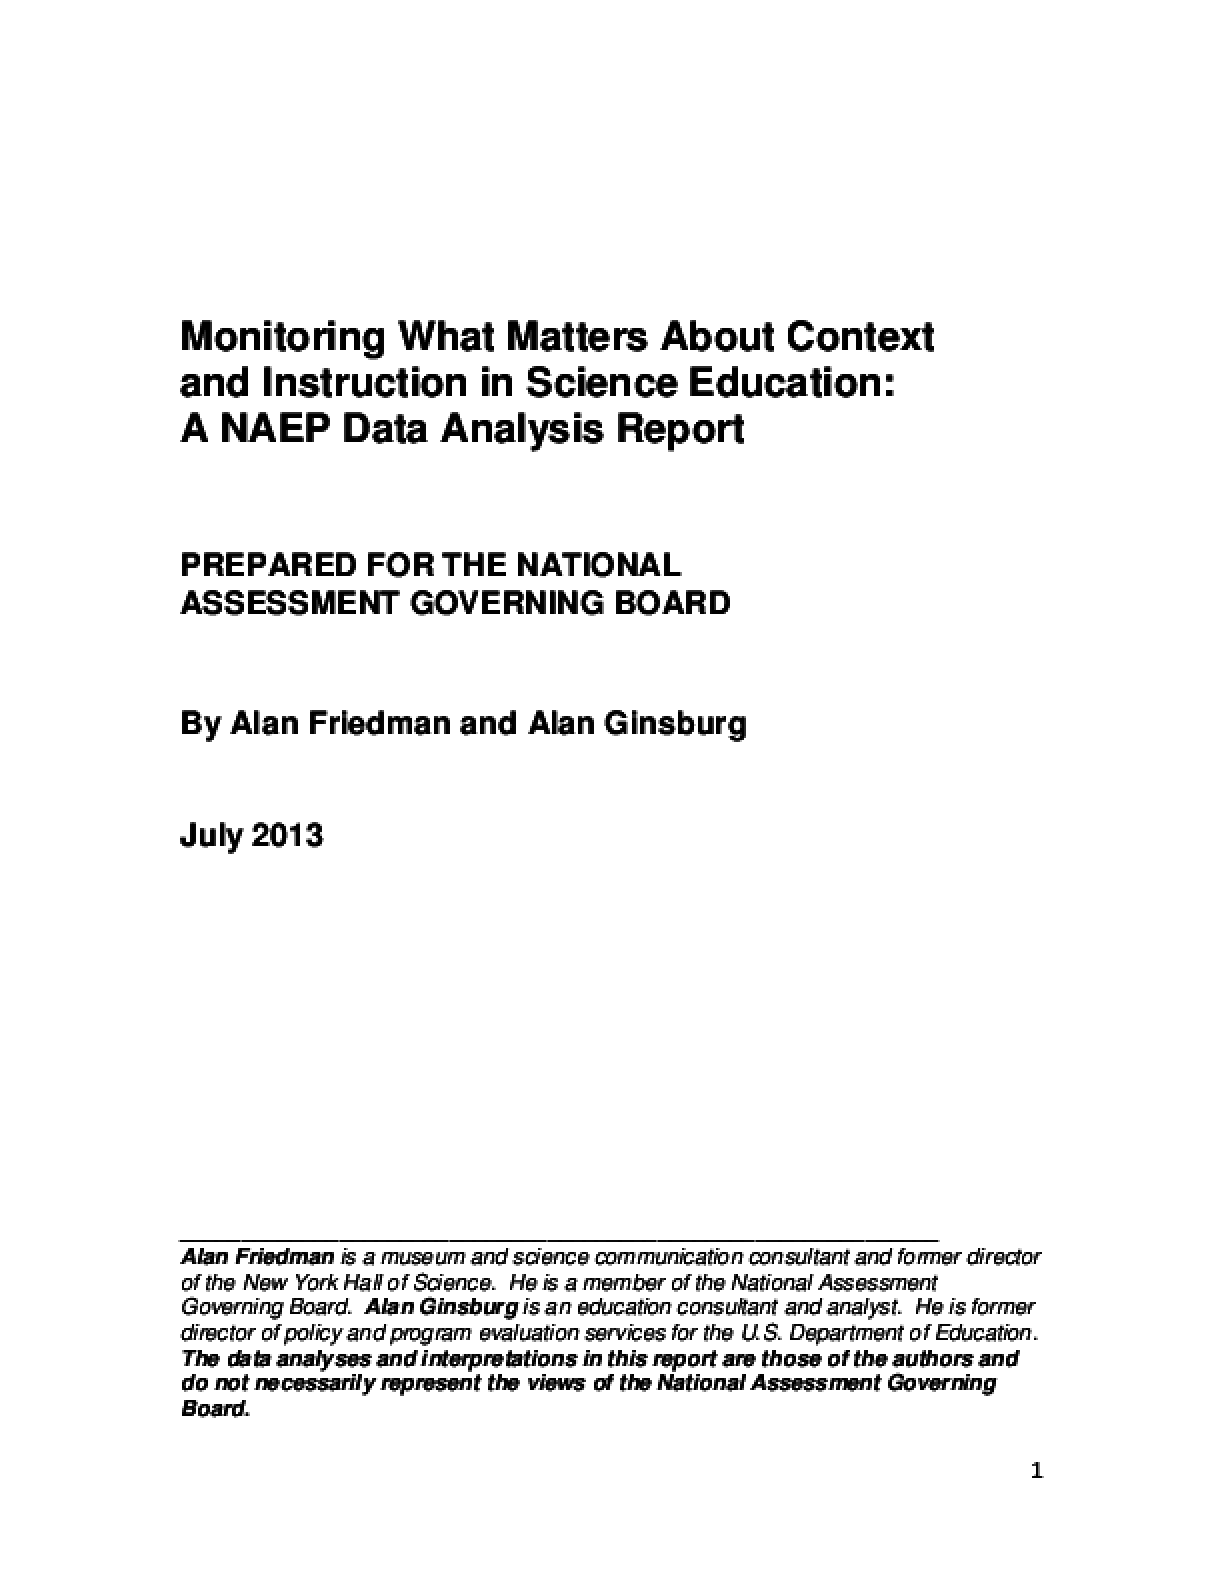 Monitoring What Matters About Context and Instruction in Science Education: A NAEP Data Analysis Report